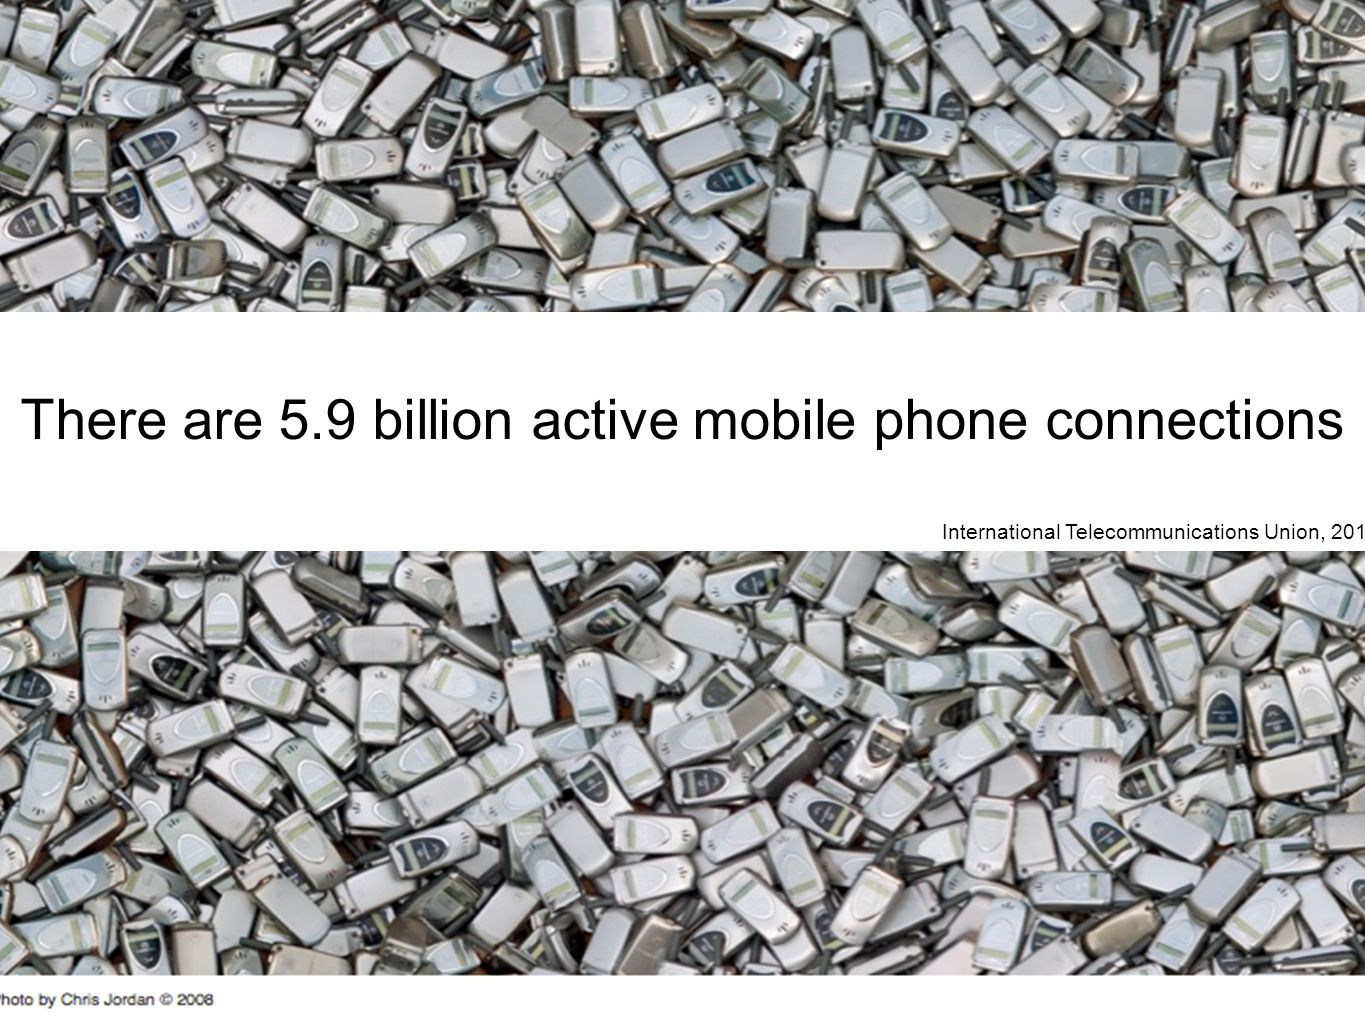 There are 5.9 billion active mobile phone connections International Telecommunications Union, 2011